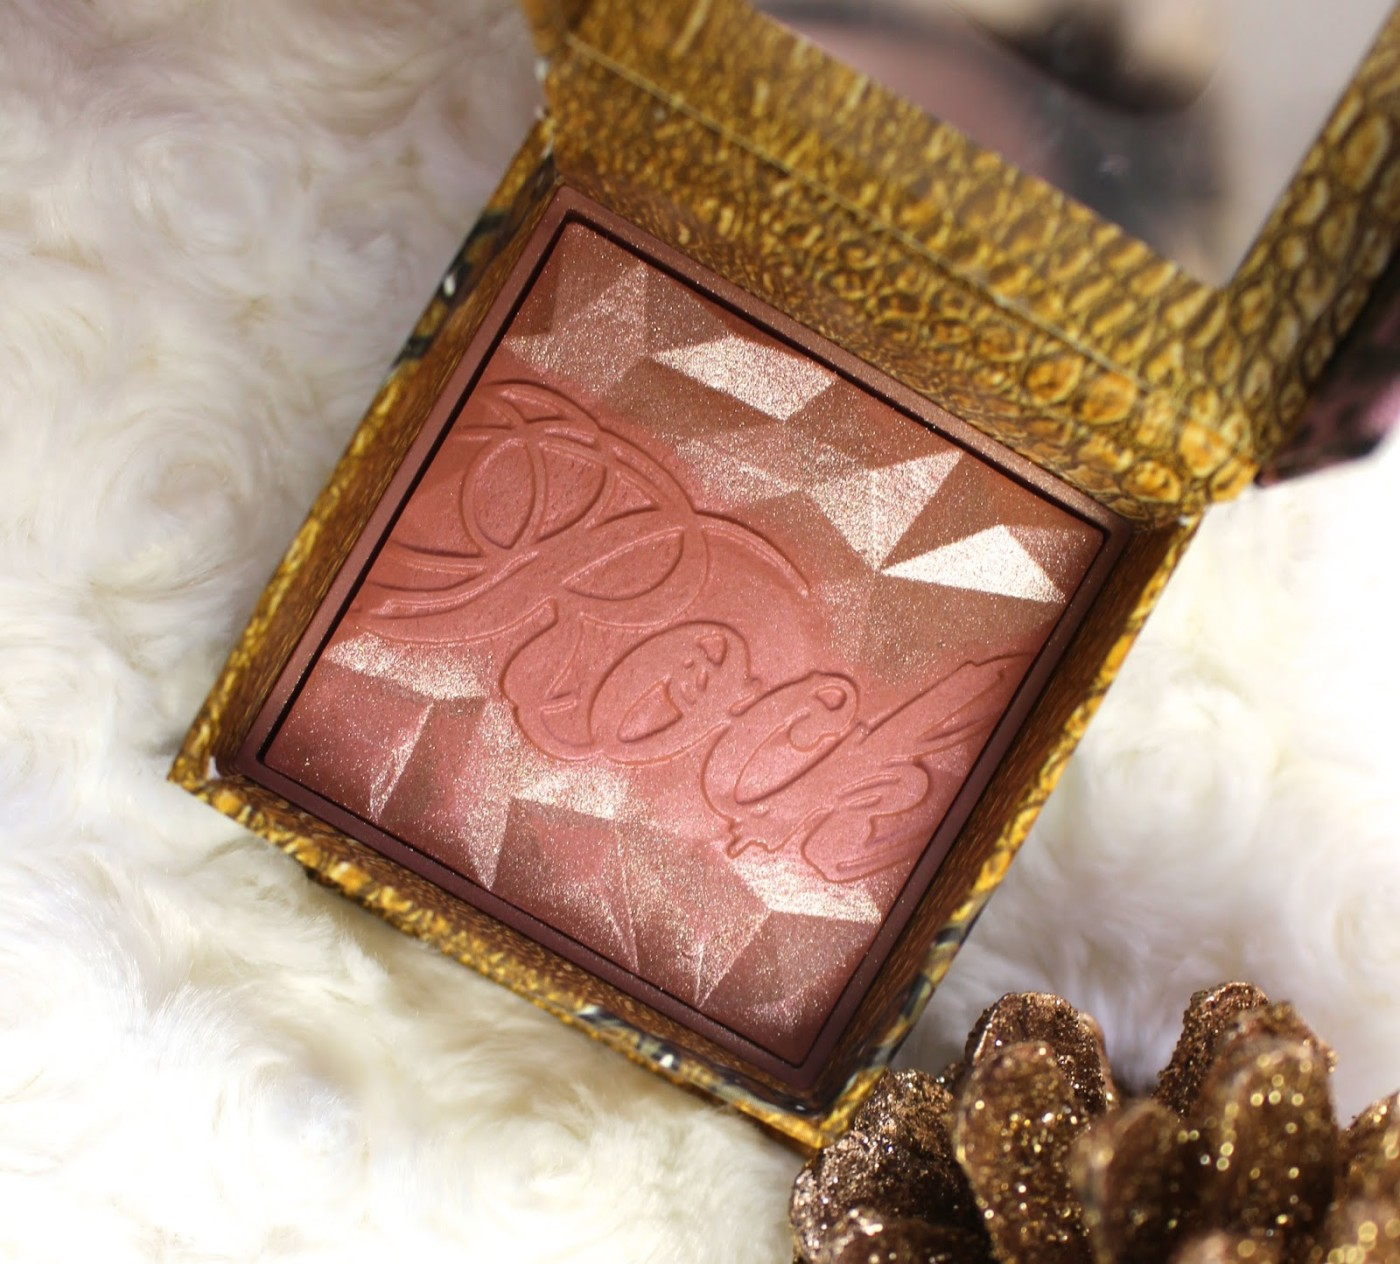 Benefit Rockateur Blush, Rose gold blush, blusher, Benefit, Rockateur Blush, through chelsea's eyes, review,